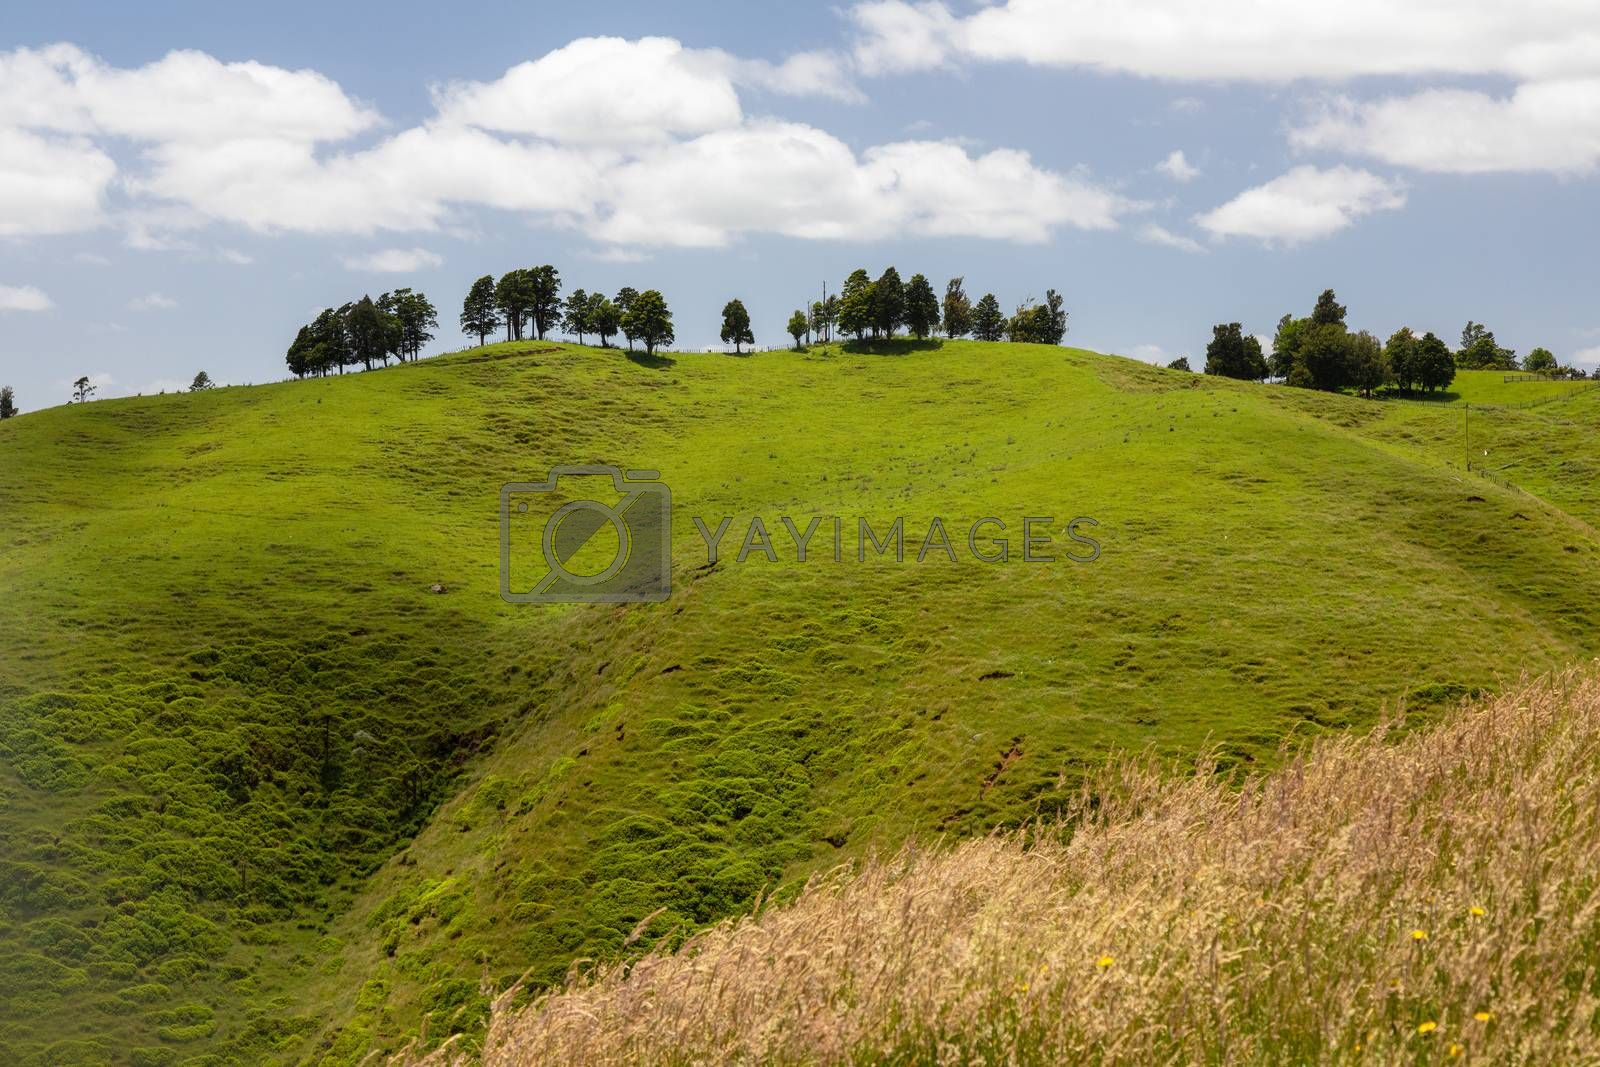 An image of a typical landscape in north New Zealand